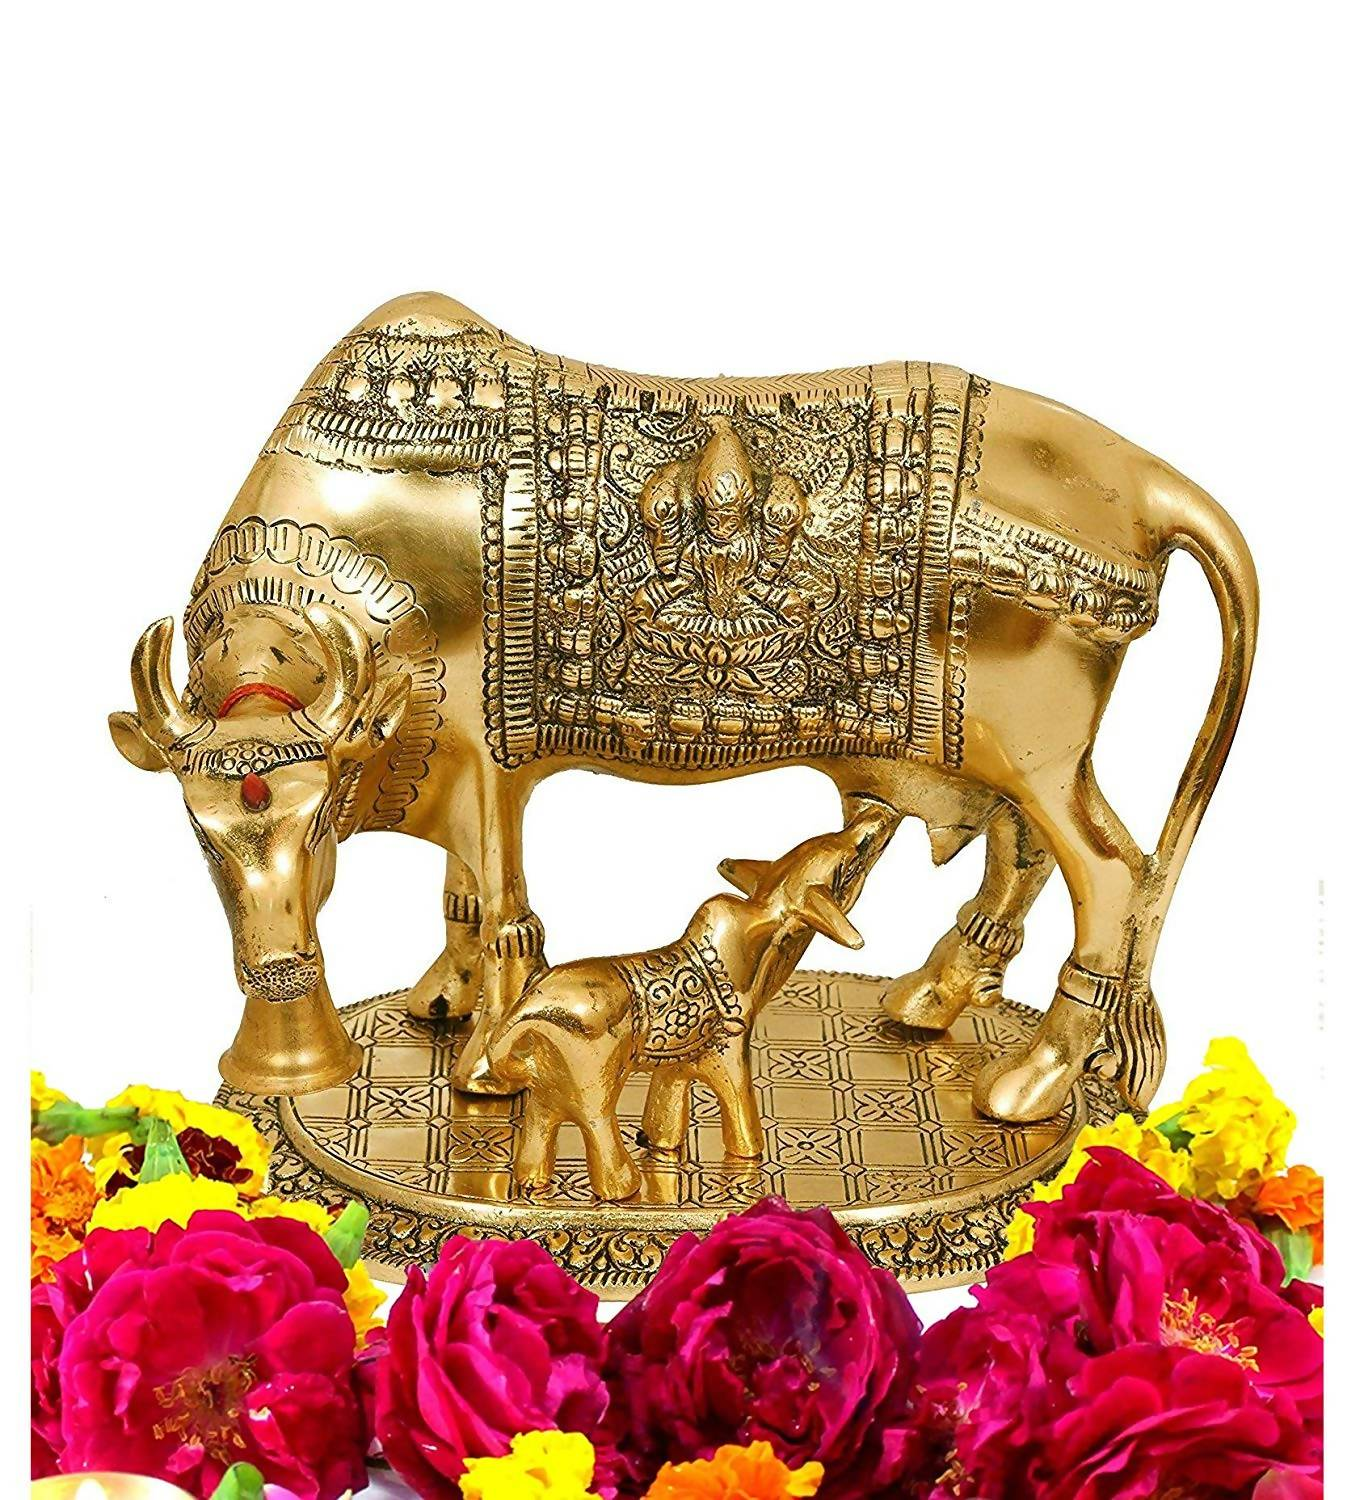 Gold Plated Hindu Religious Laxmi Ganesh Kamdhenu Cow with Calf (18 cm,  Gold) Exclusive Gift Items for Diwali Gift, Wedding Gift and Corporate Gift  $